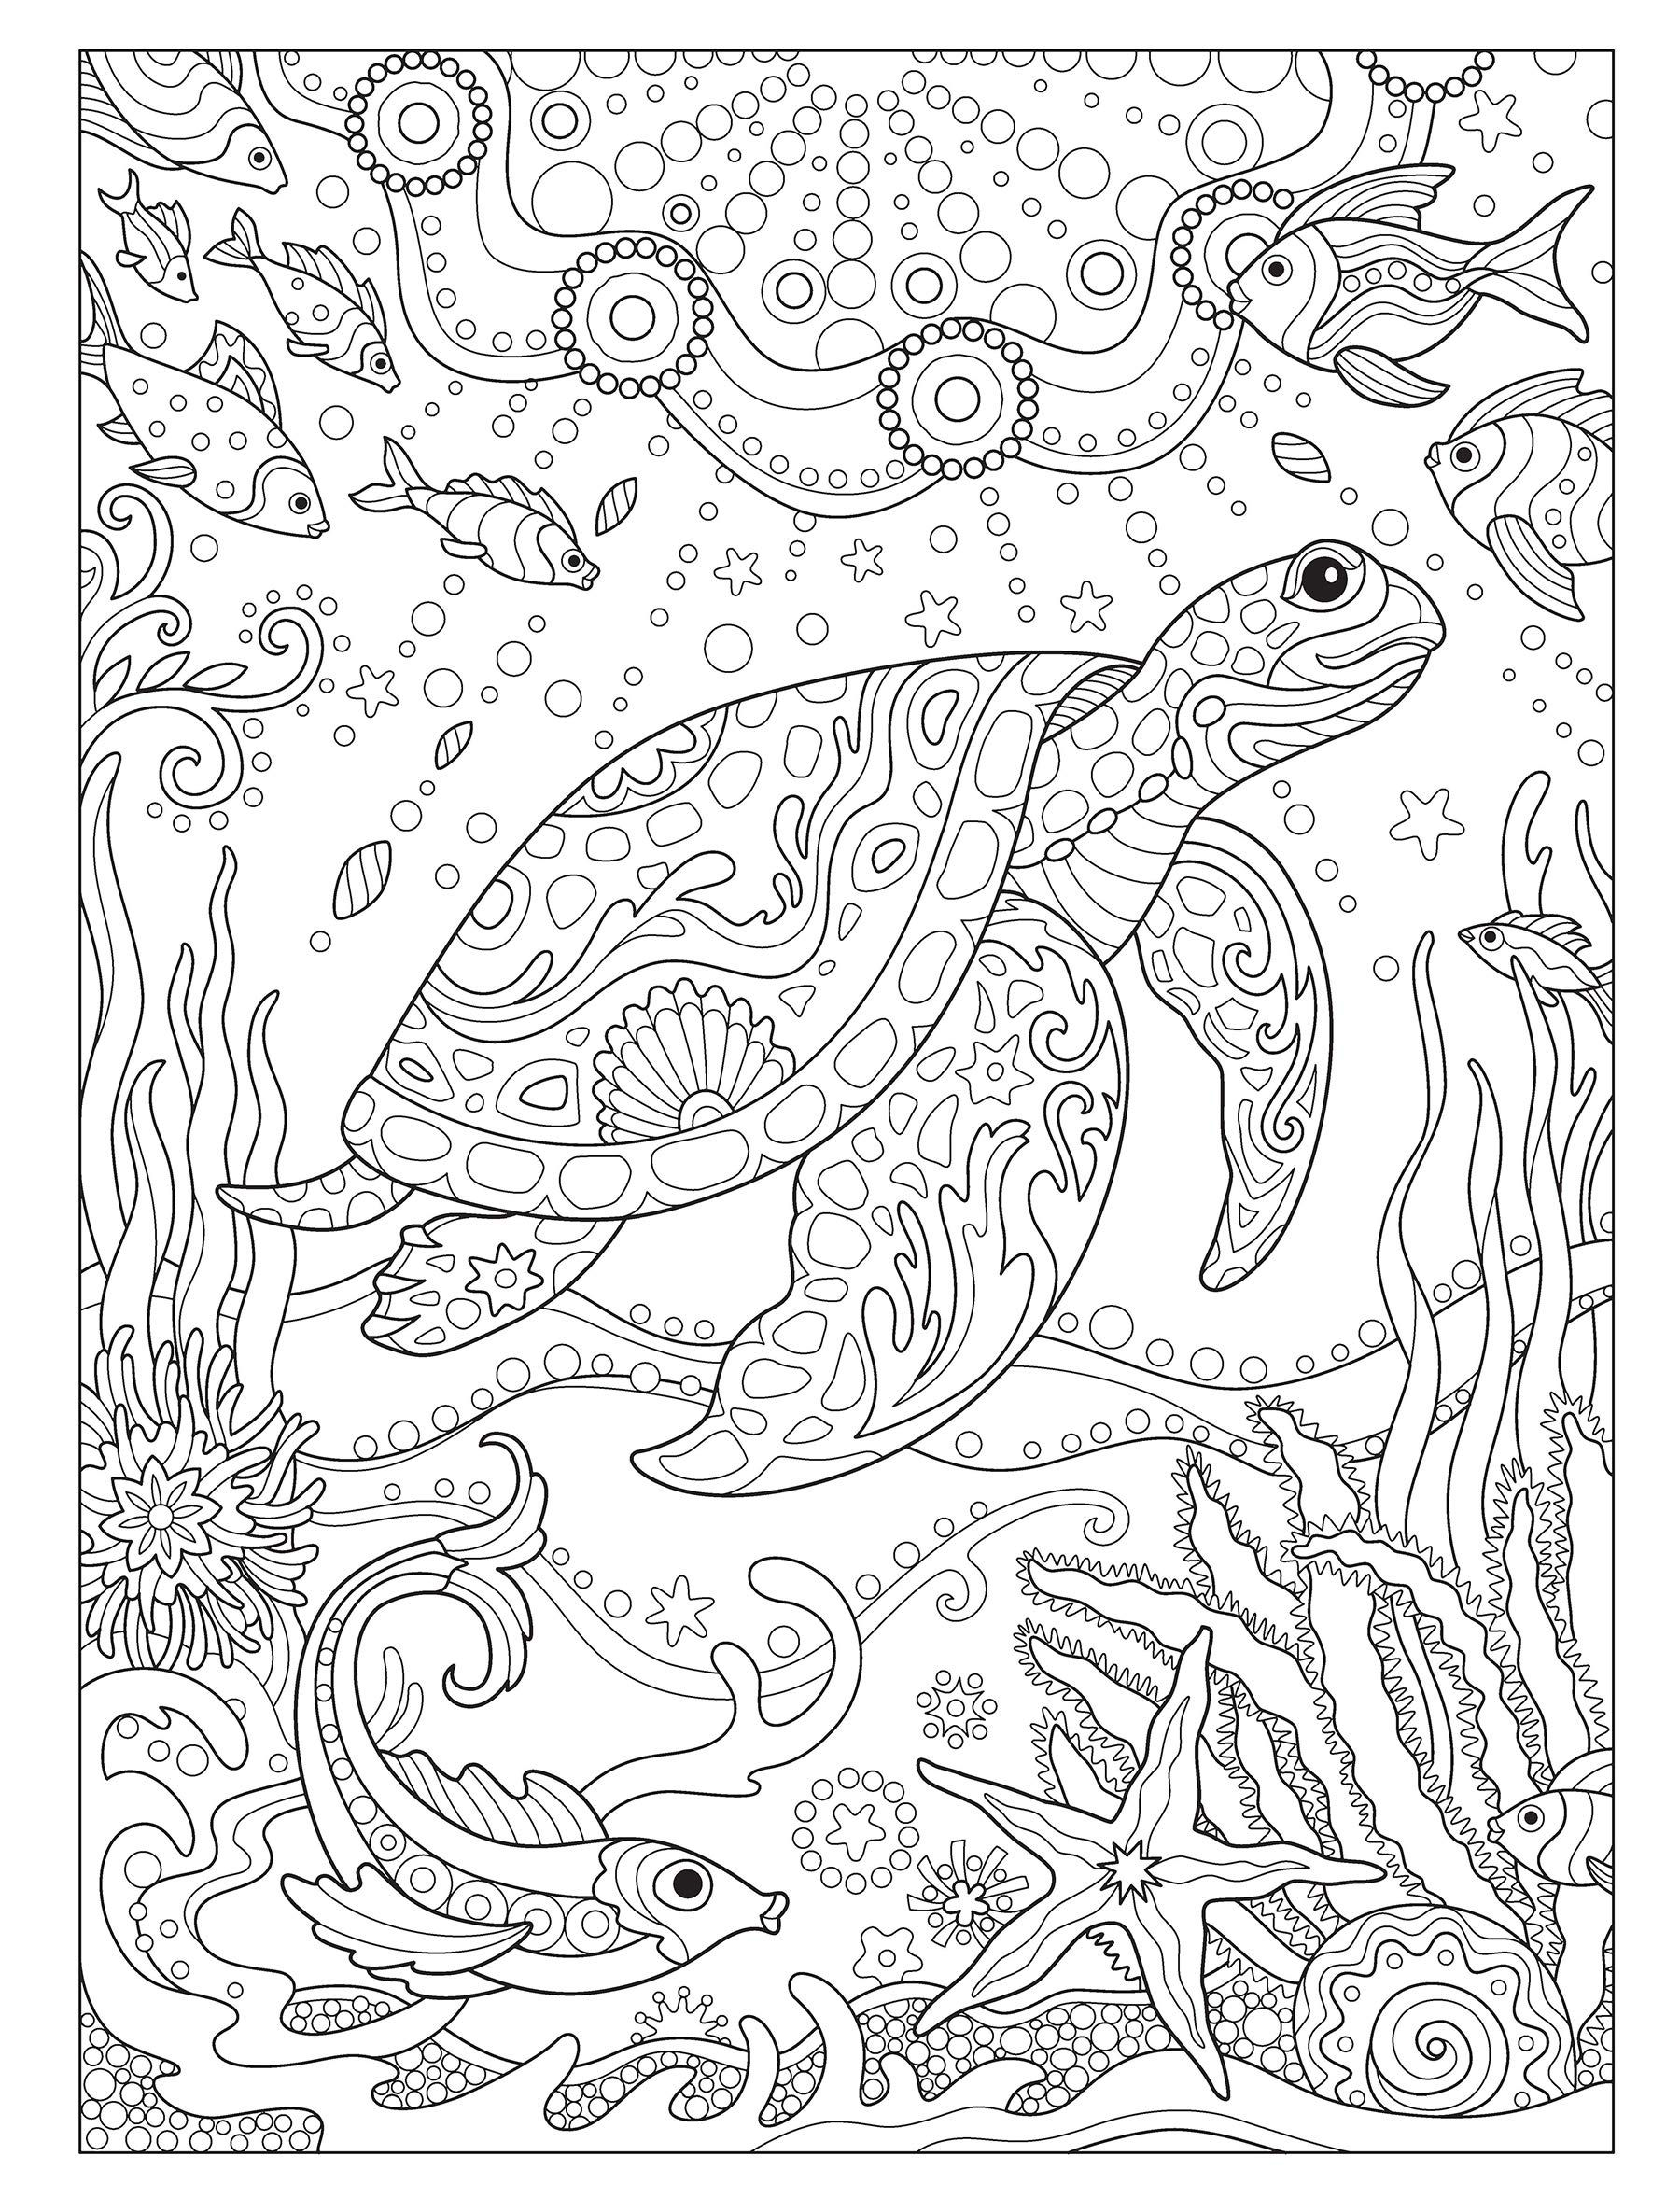 Pin By Vsco Sisters On Detailed Coloring Pages In 2020 Turtle